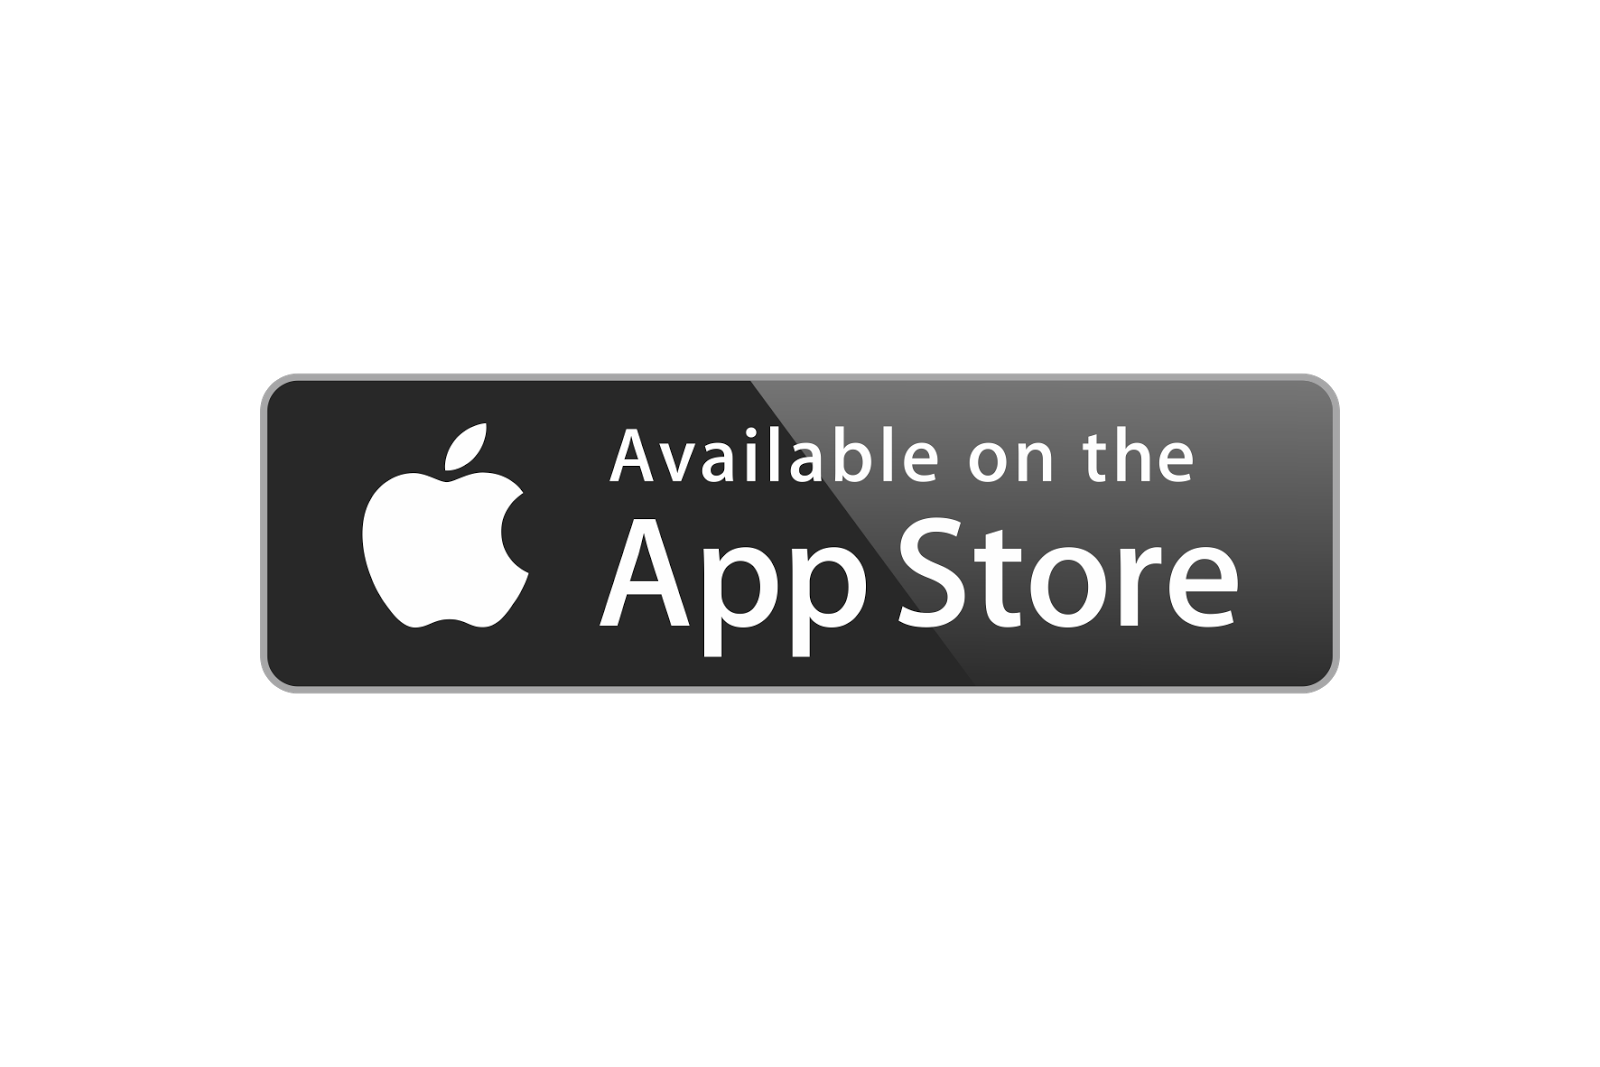 available on the app store logo